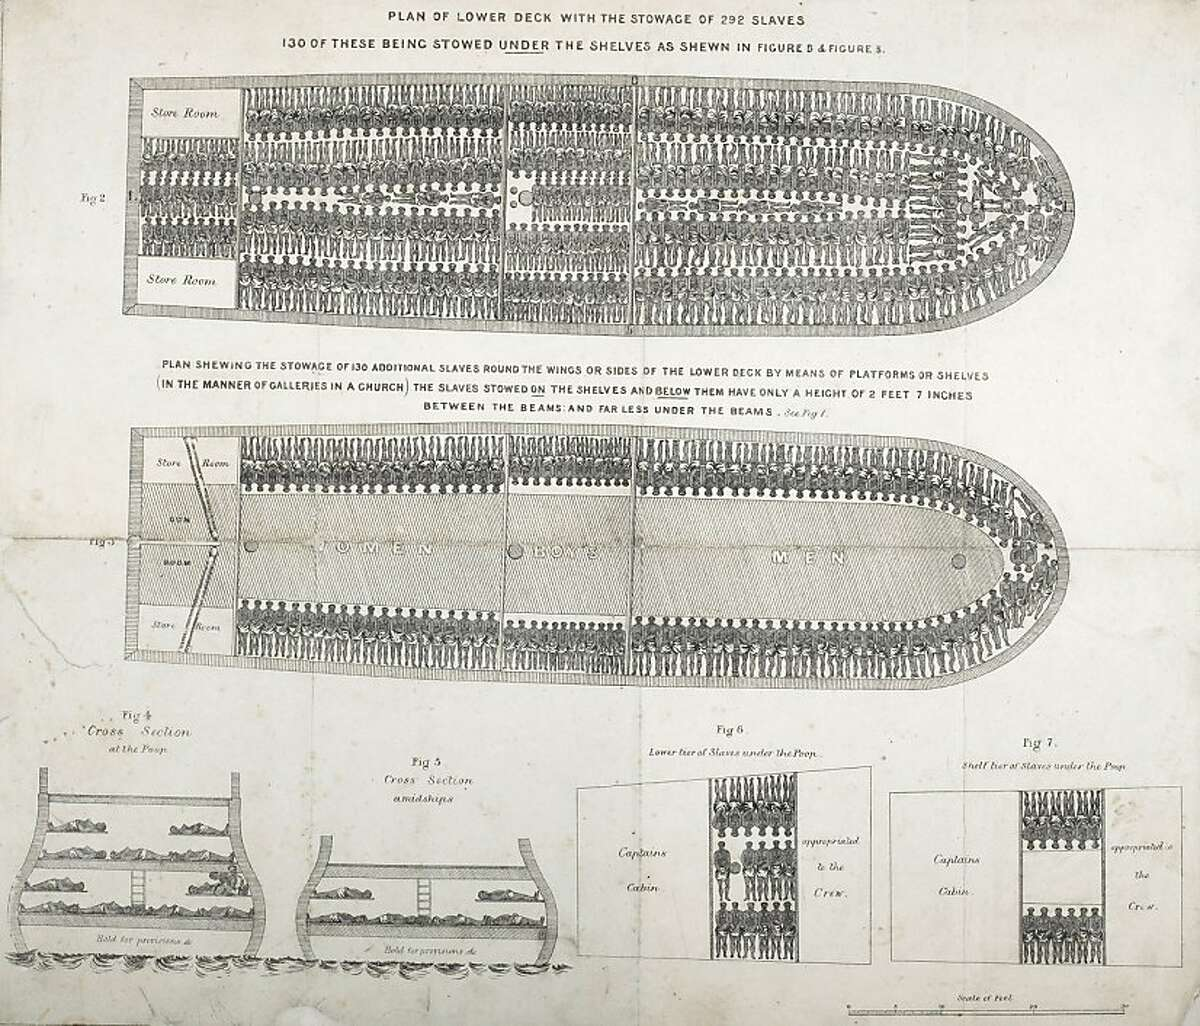 This is diagram of the Liverpool slave ship Brookes dated 1789, made available by the Museum of London Docklands on Wednesday Feb. 27, 2013 . The diagram details the stowage of slaves on the Liverpool slave ship 'Brookes'. A new database lets Britons search for uncomfortable information ó whether their ancestors owned slaves. Researchers at University College London have compiled a searchable listing of thousands of people who received compensation for loss of their